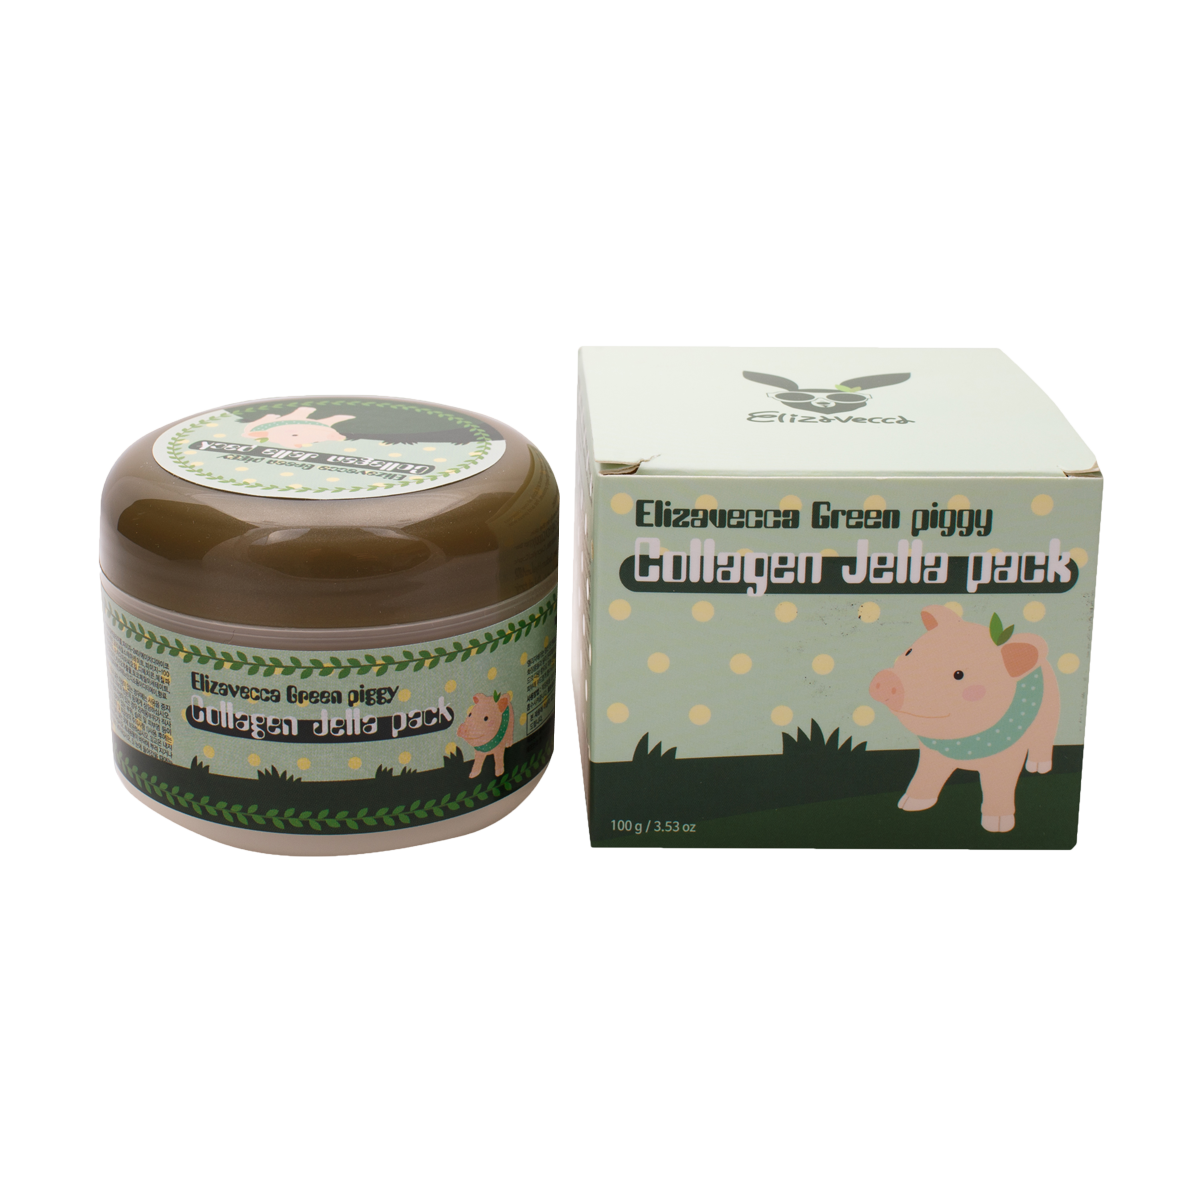 Кремовые Гелевая коллагеновая маска Green Piggy Collagen Jella Pack, 100 мл import_files_5a_5a805617480011e680fcd43d7eeceb89_c9c310f0322211e980eb00155d005a0e.png